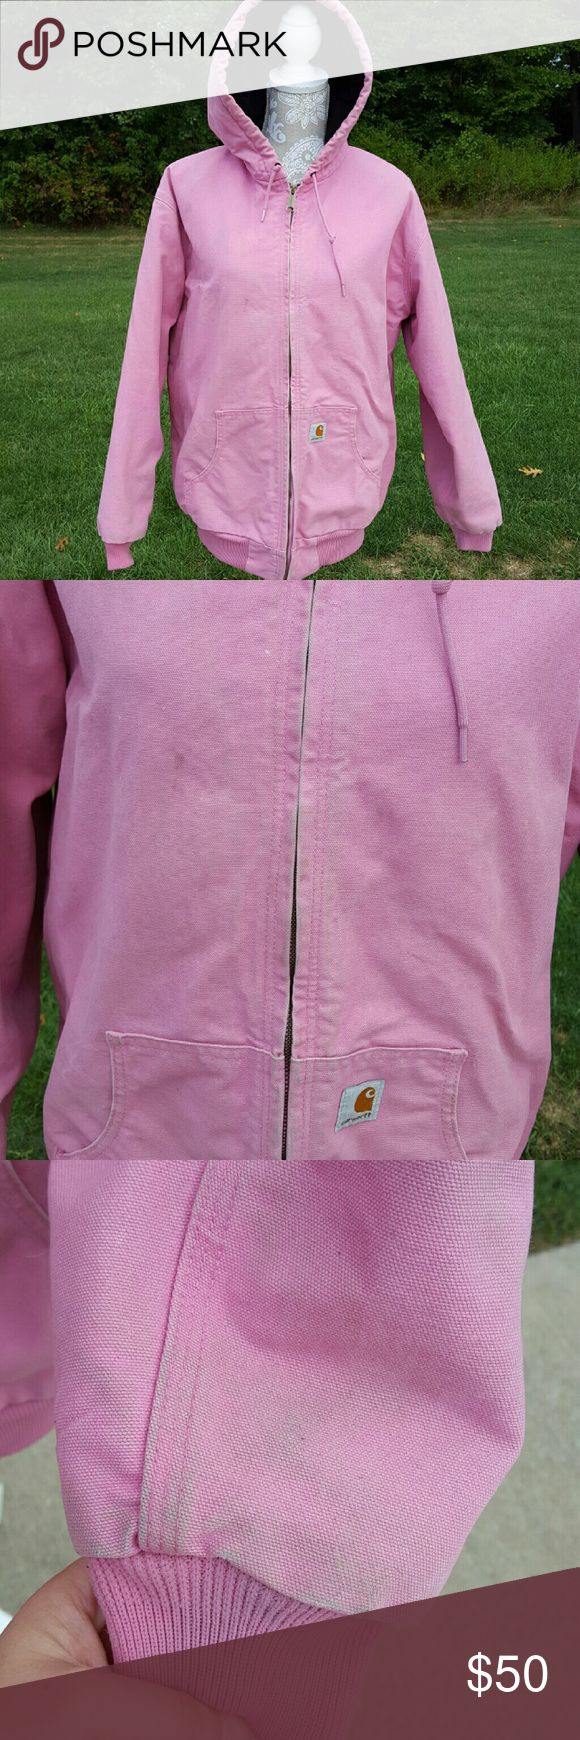 Pink Breast Cancer edition Carhartt winter jacket Has been worn Size X Large Long sleeves Hooded  Drawstring hood Fleece lined Zip up Flaw: does has some marks on it from wear ex. Coffee No Trades Carhartt Jackets & Coats